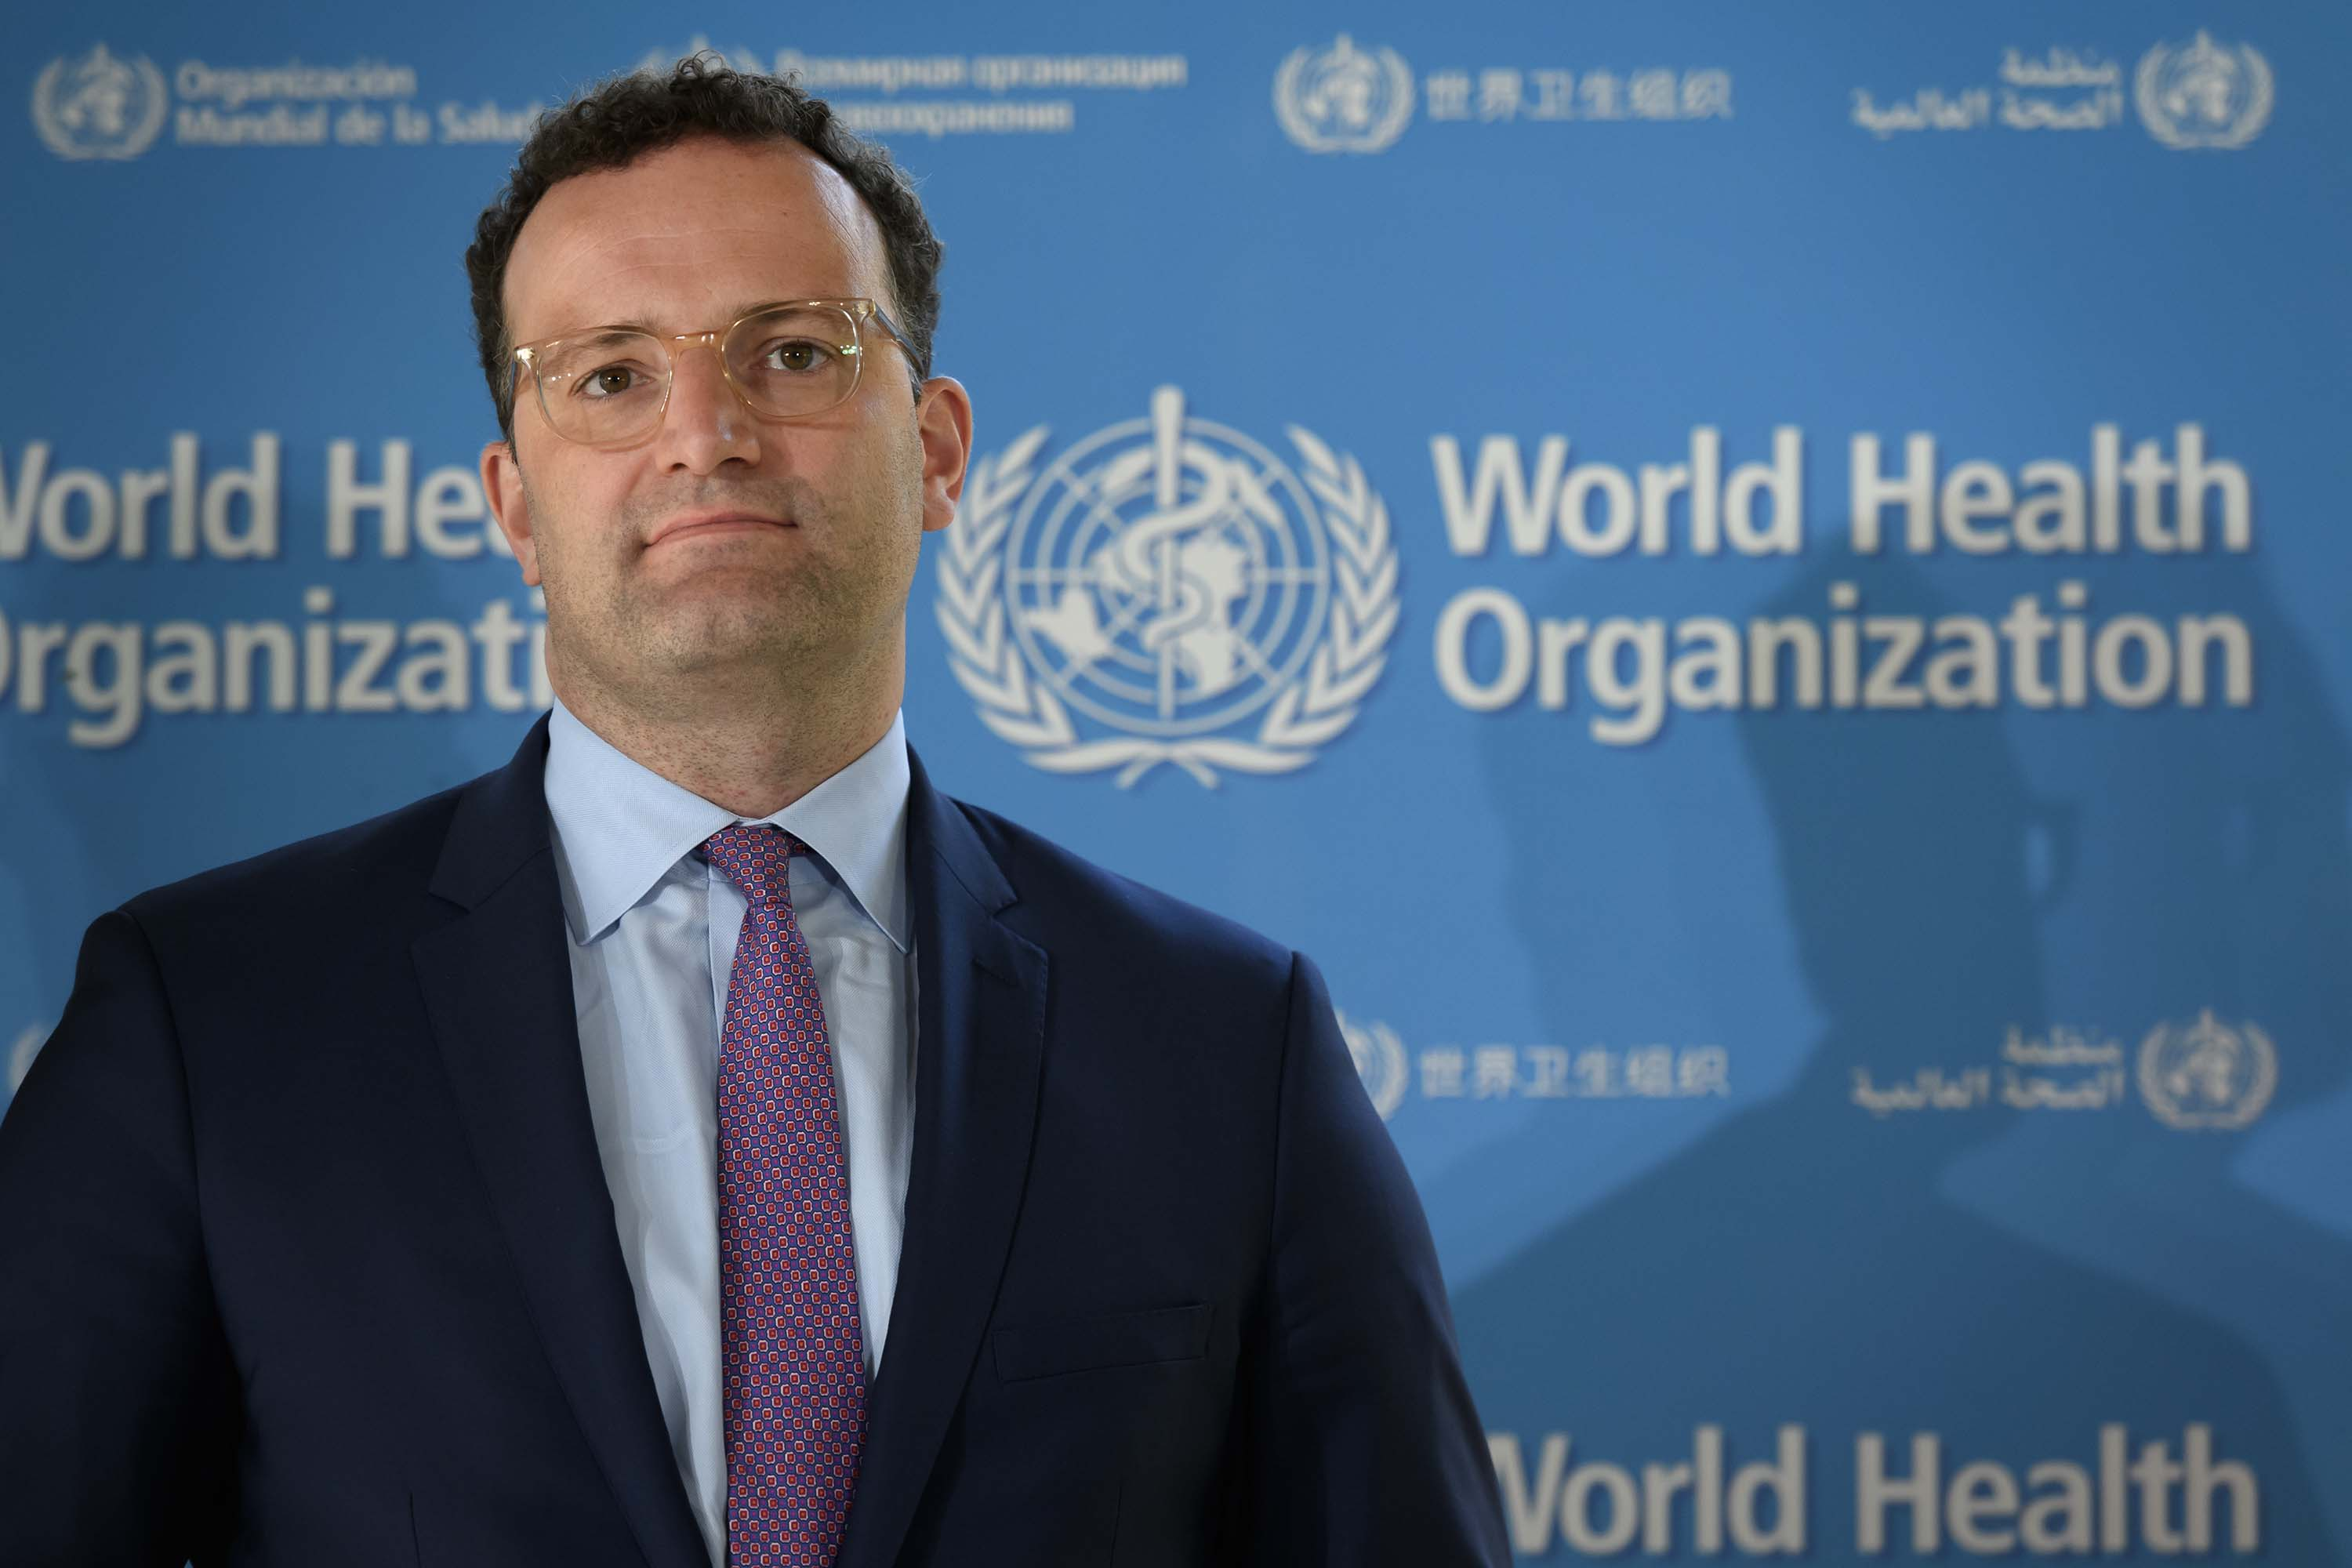 German Health Minister Jens Spahn looks on during a press conference at the World Health Organization headquarters in Geneva, Switzerland, on June 25, following a meeting about the COVID-19 outbreak.